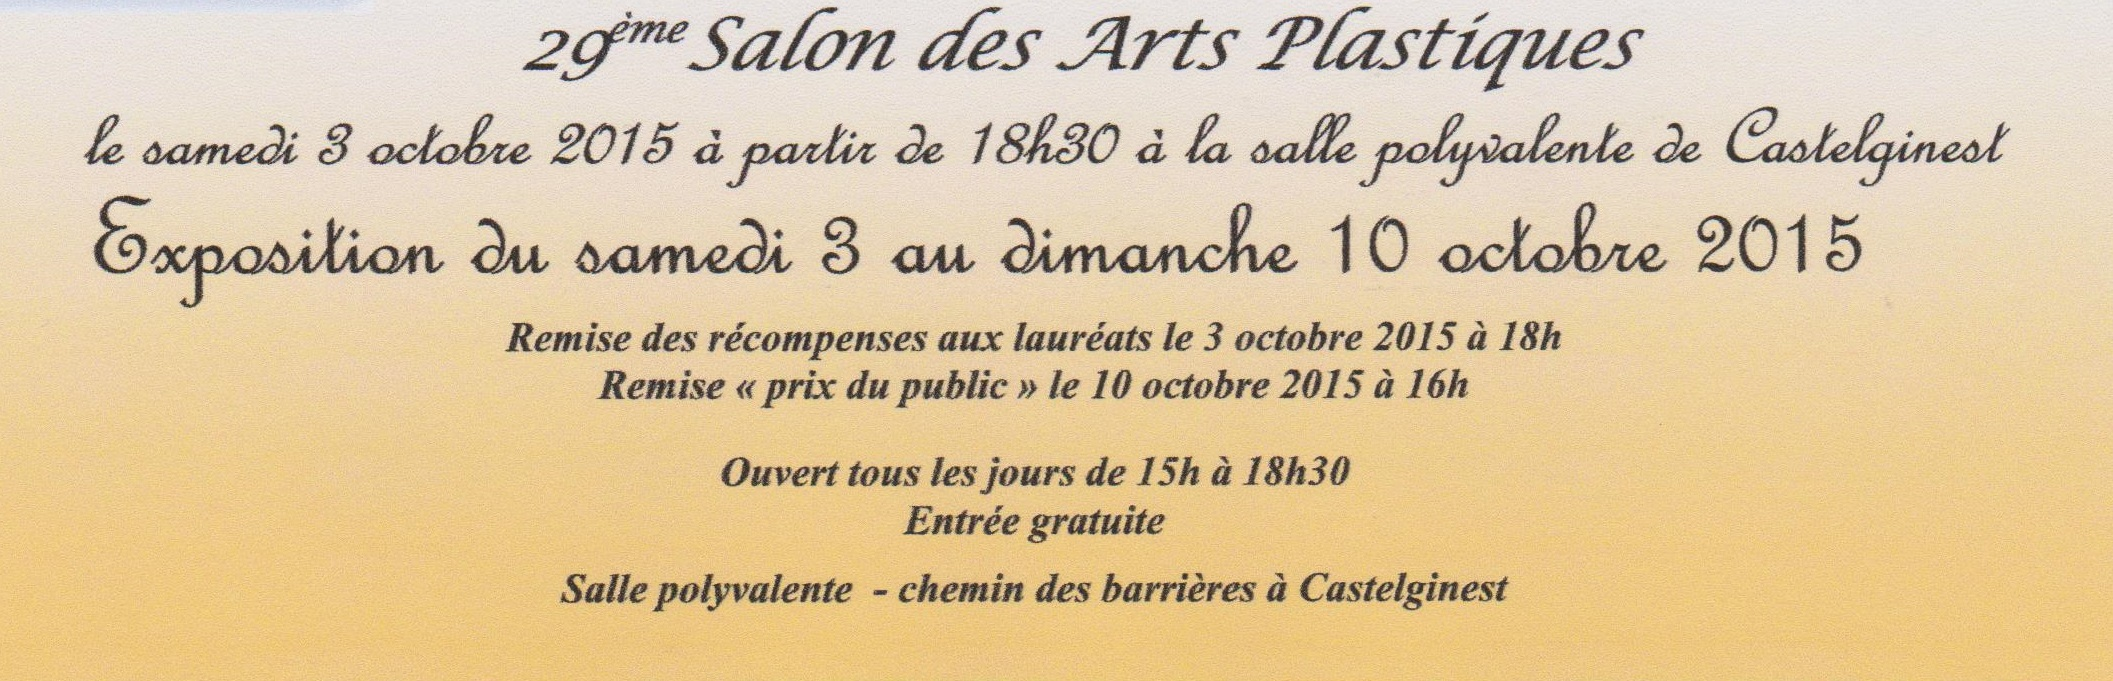 invitation salon des arts 001